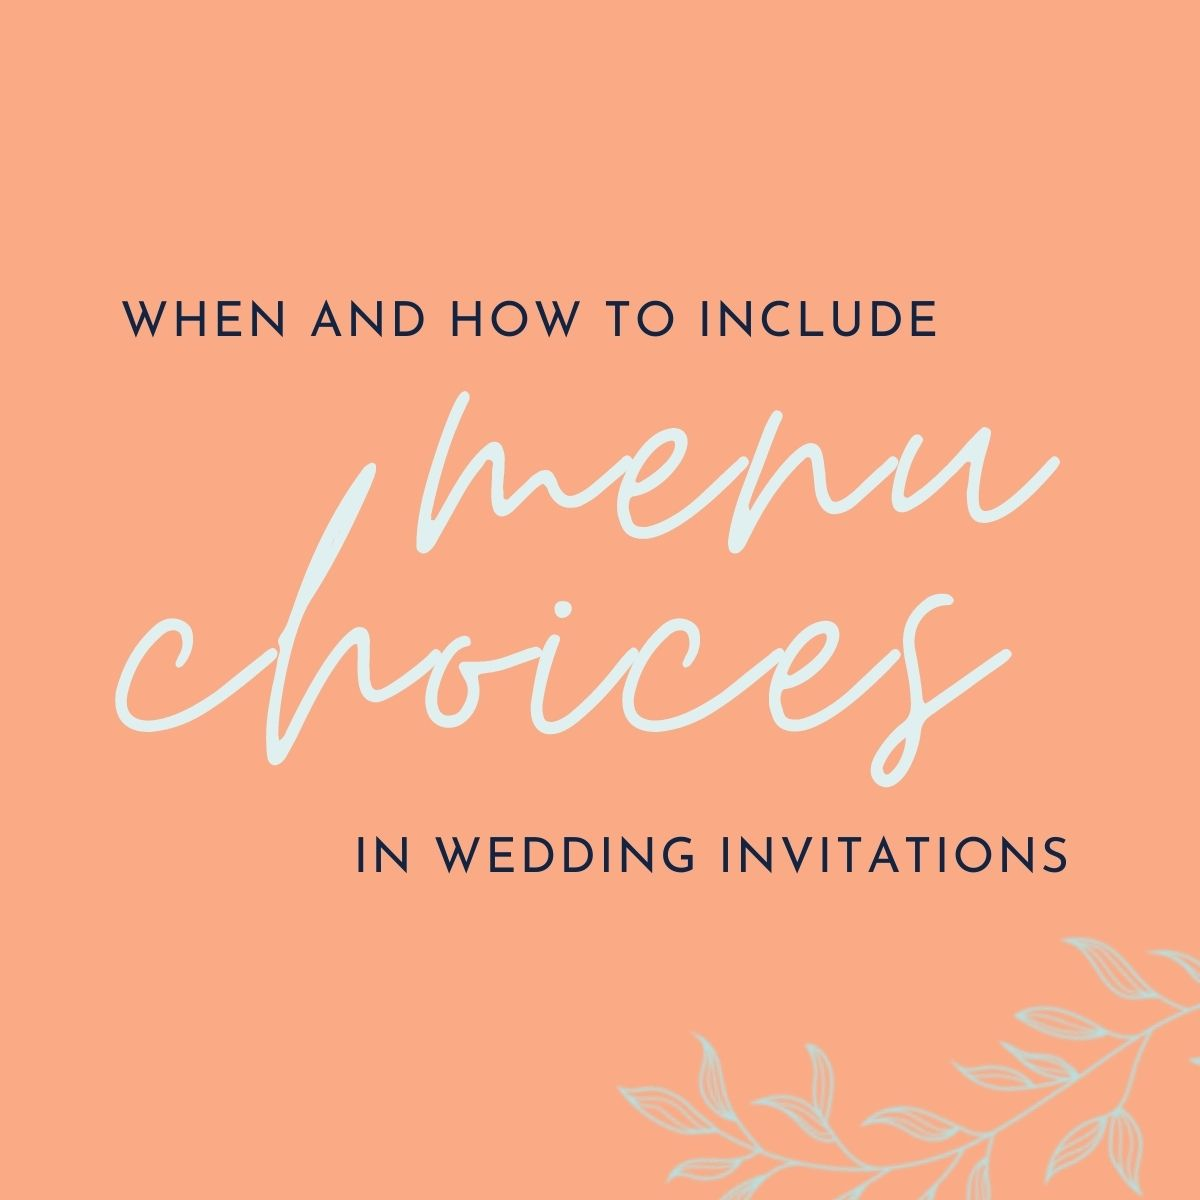 menu choices in wedding invitations graphic